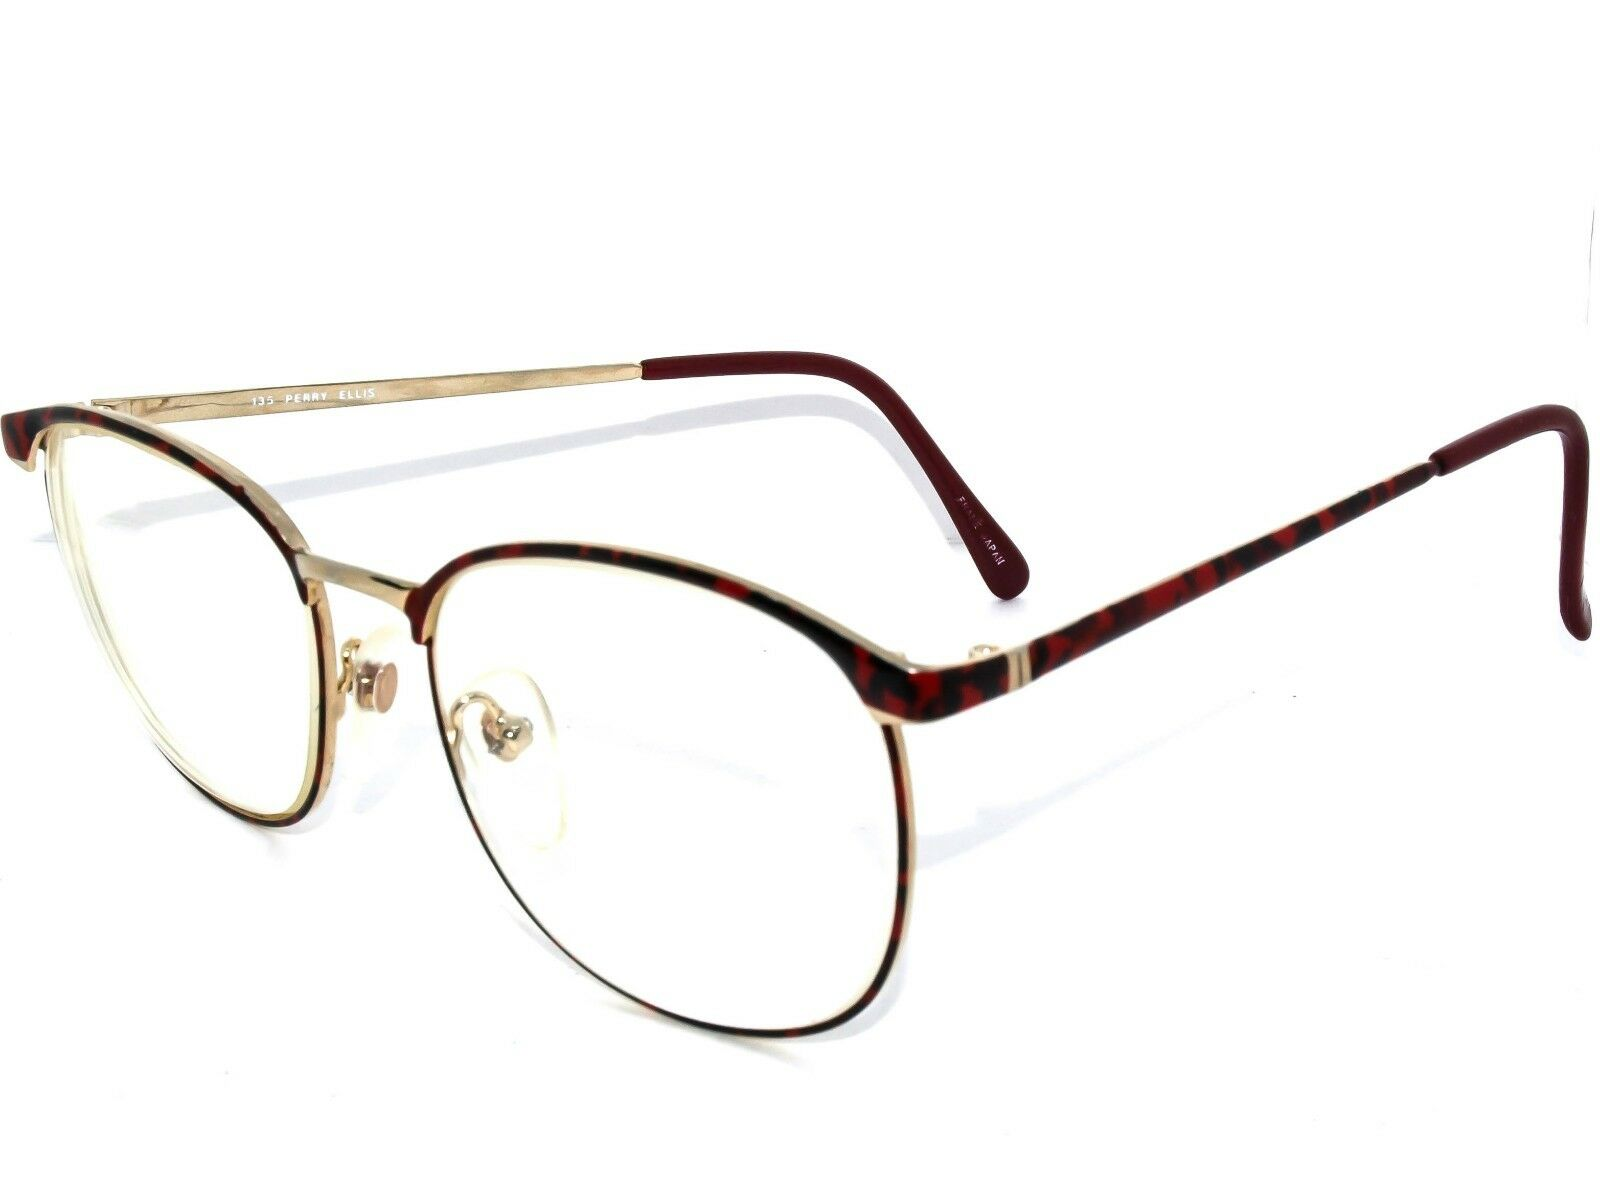 Perry Ellis PE 12-7 135 Eyeglasses